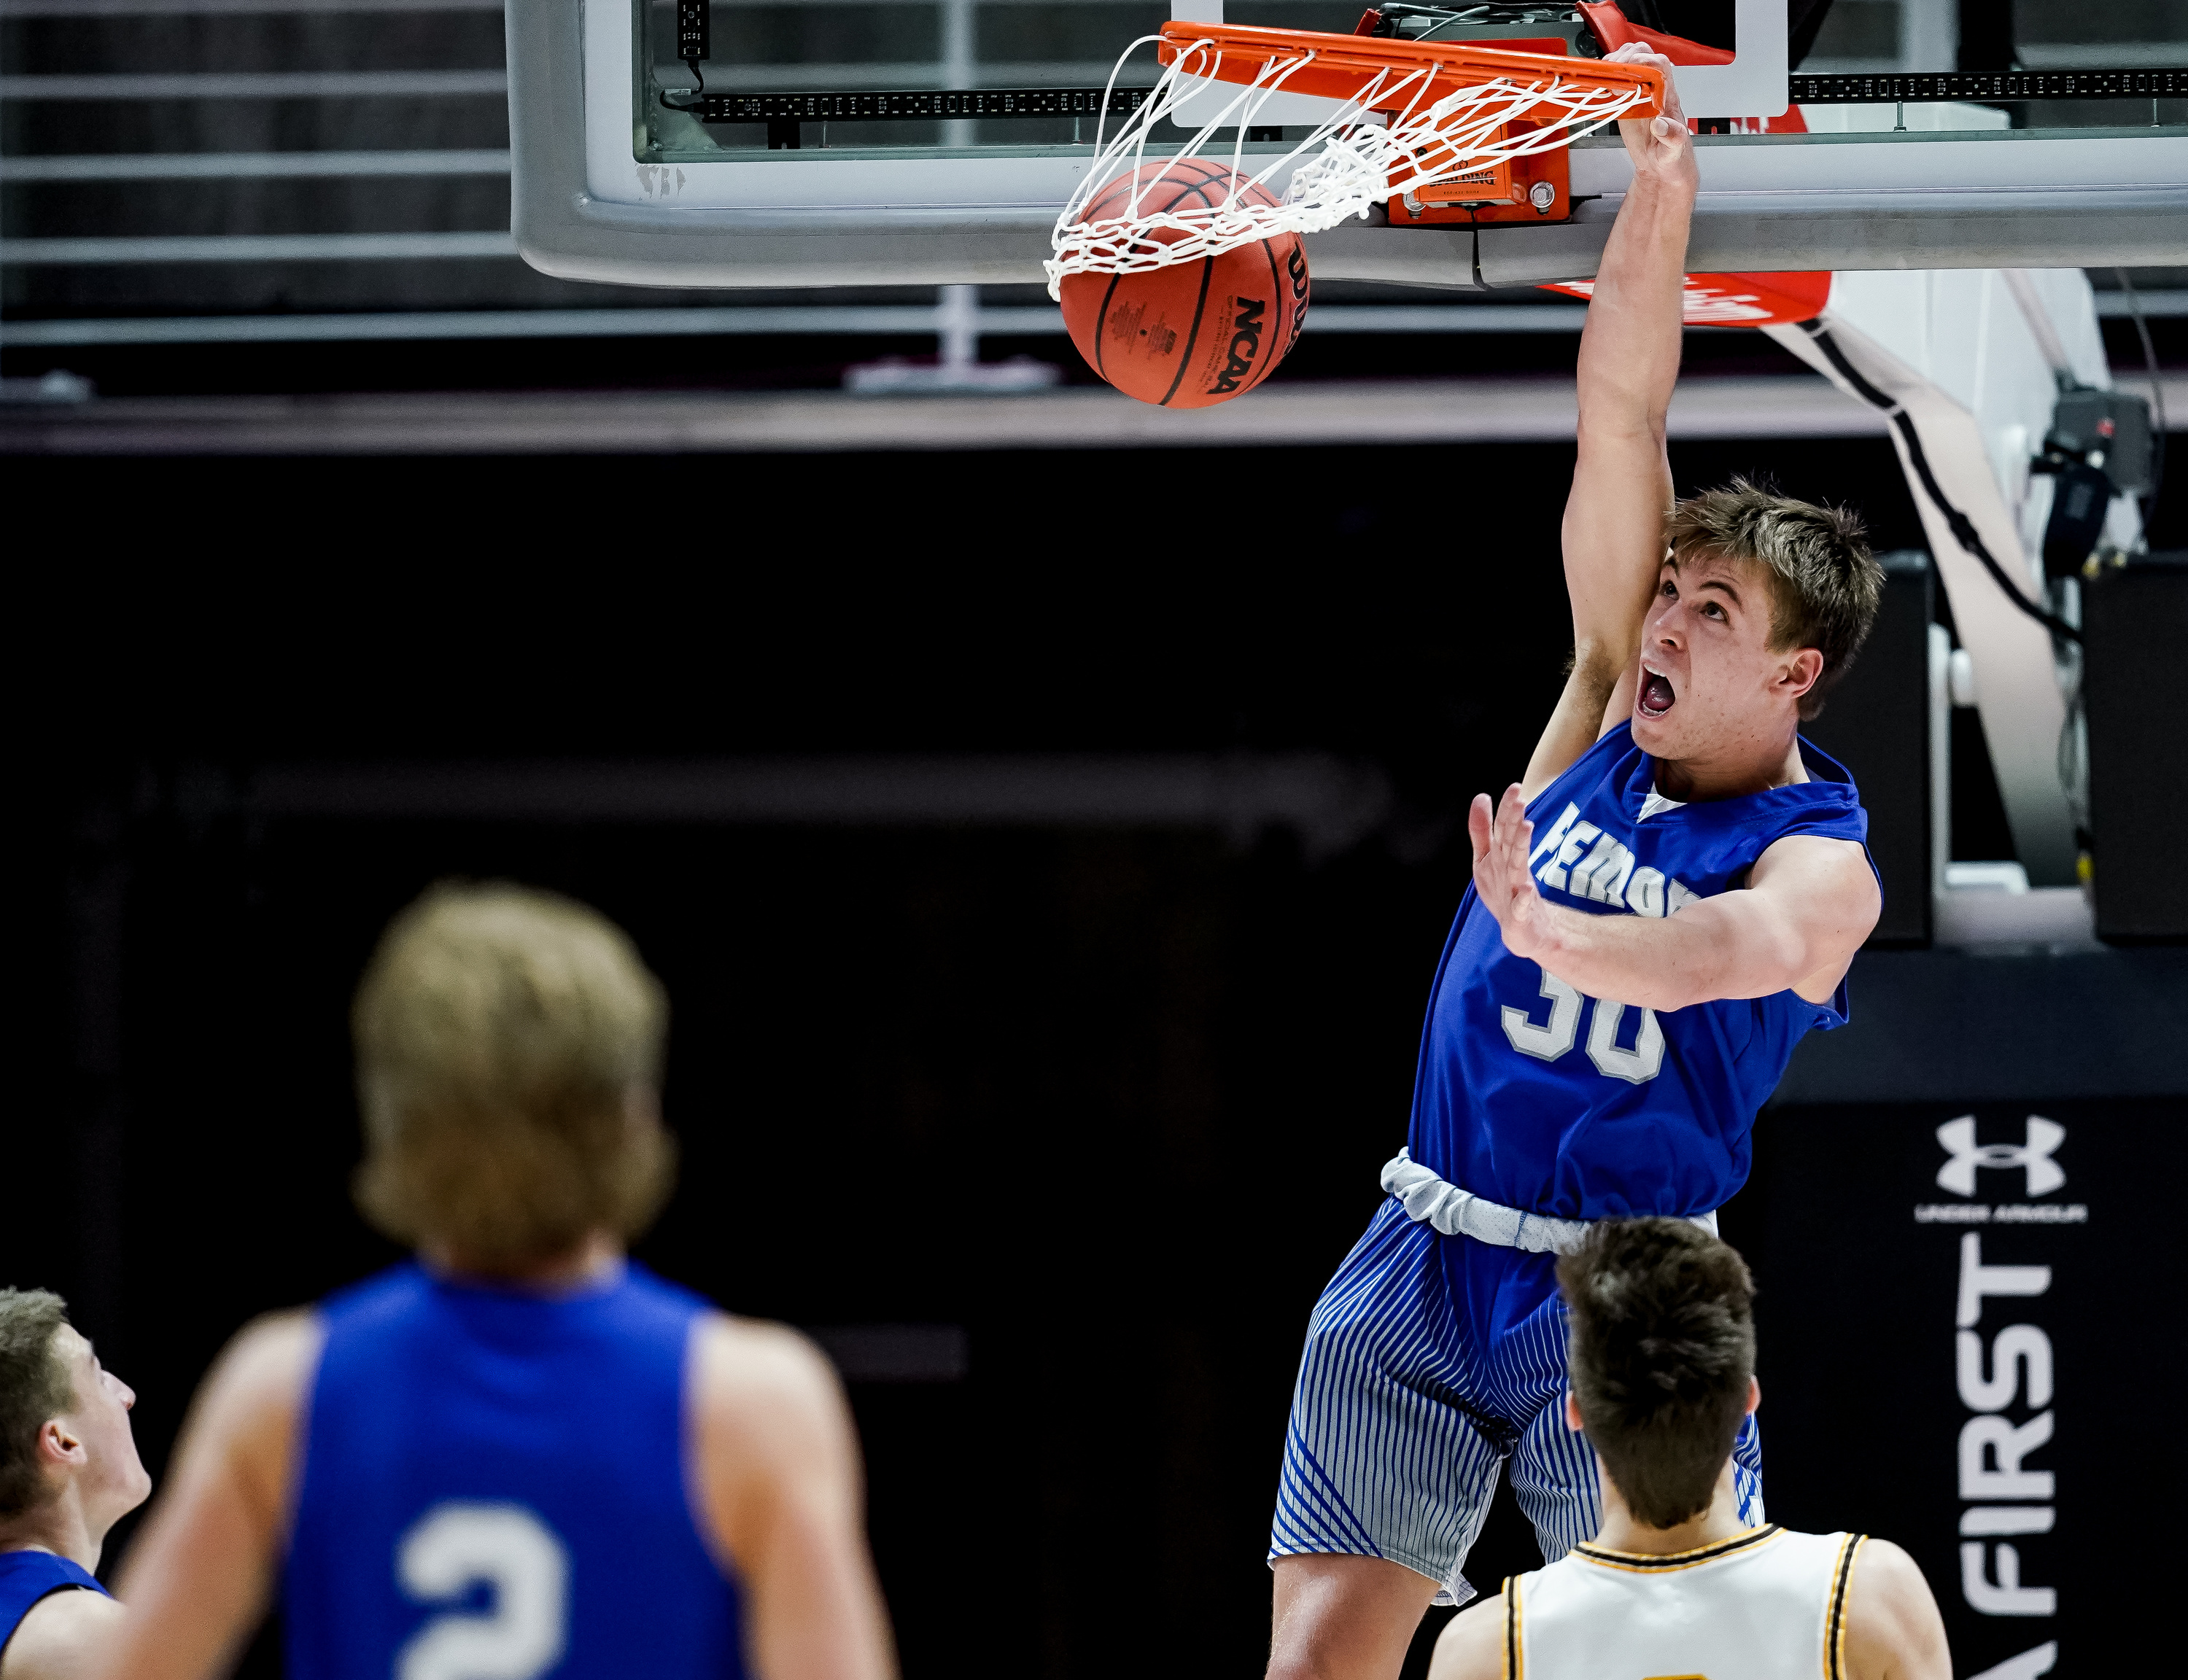 Fremont's Dallin Hall dunks during the 6A boys basketball championship game against Davis at the Huntsman Center in Salt Lake City on Saturday, Feb. 29, 2020.